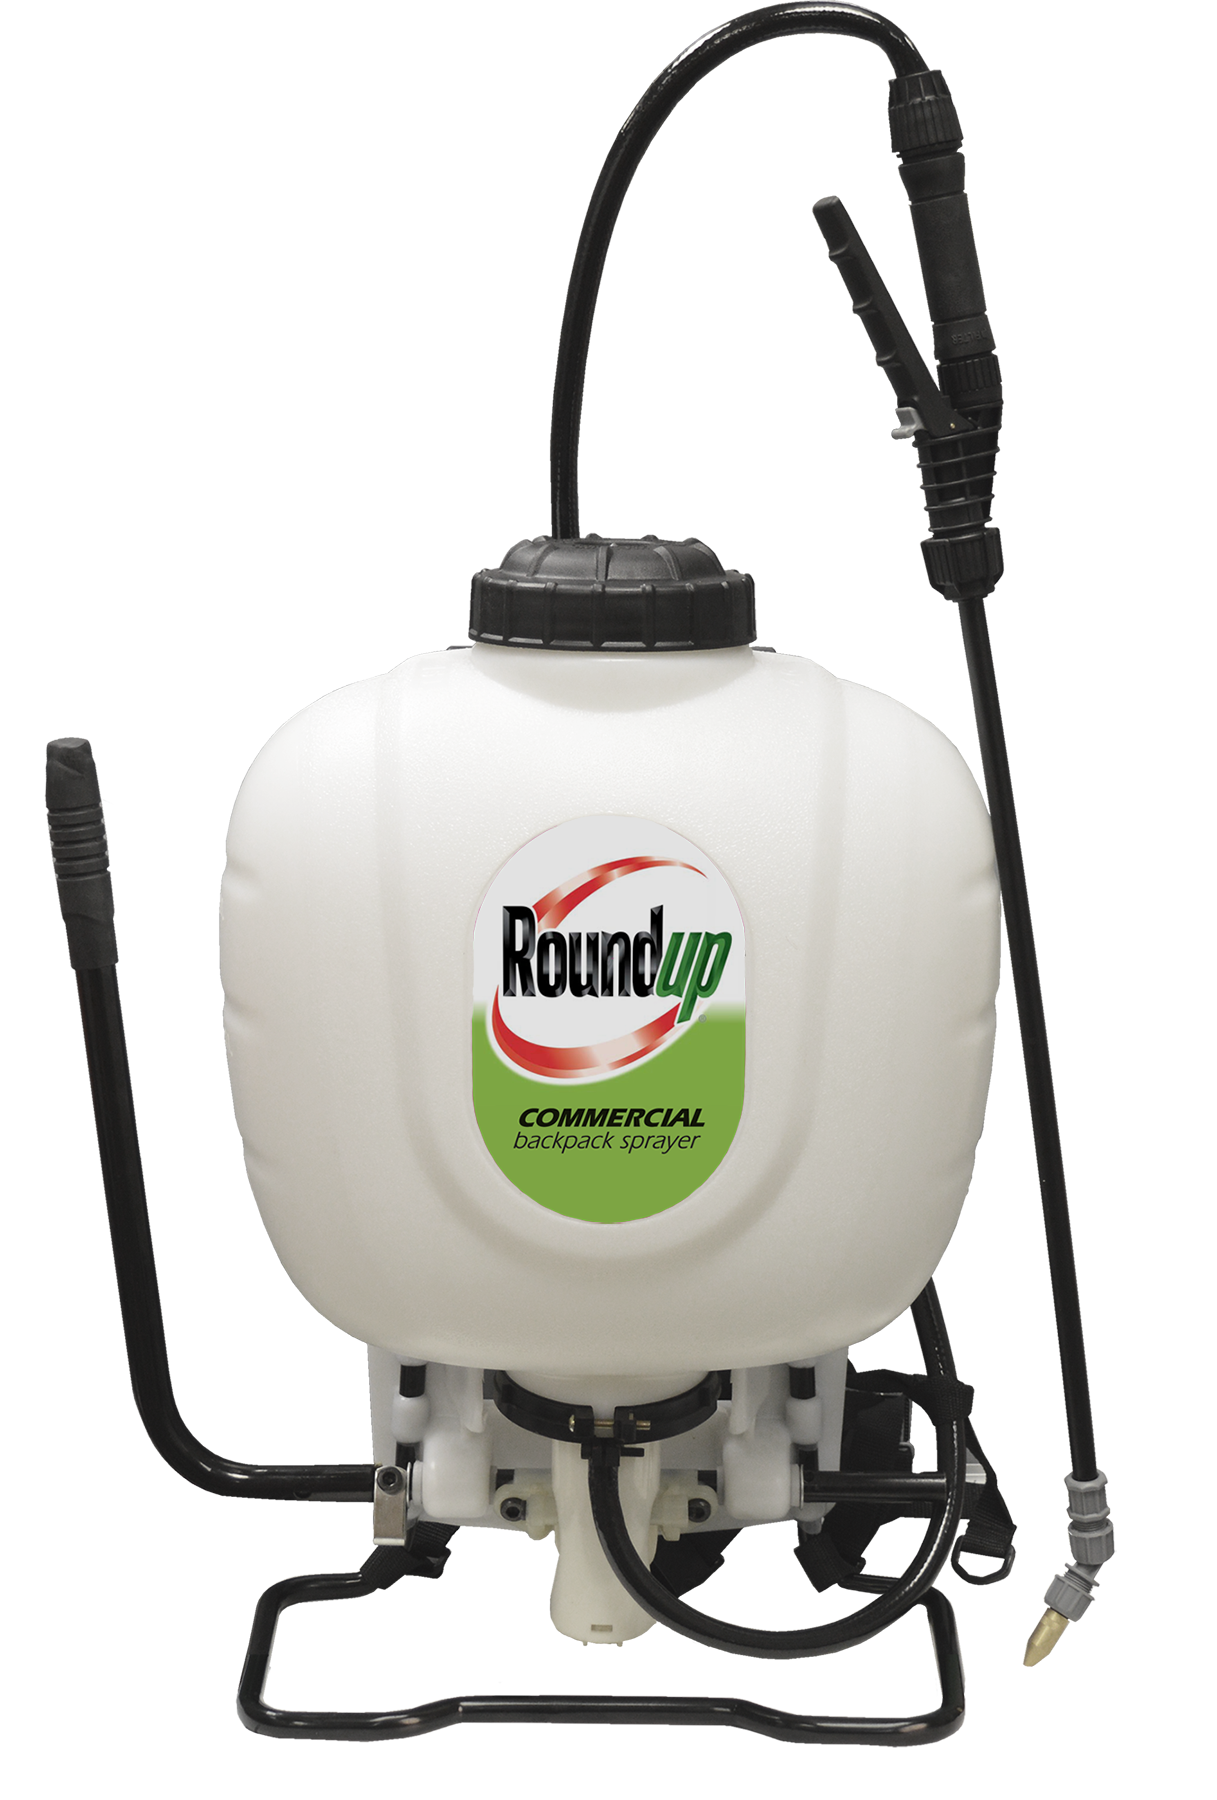 Roundup 190426 4 Gallon Commercial Backpack Sprayer by FOUNTAINHEAD/BURGESS PROD